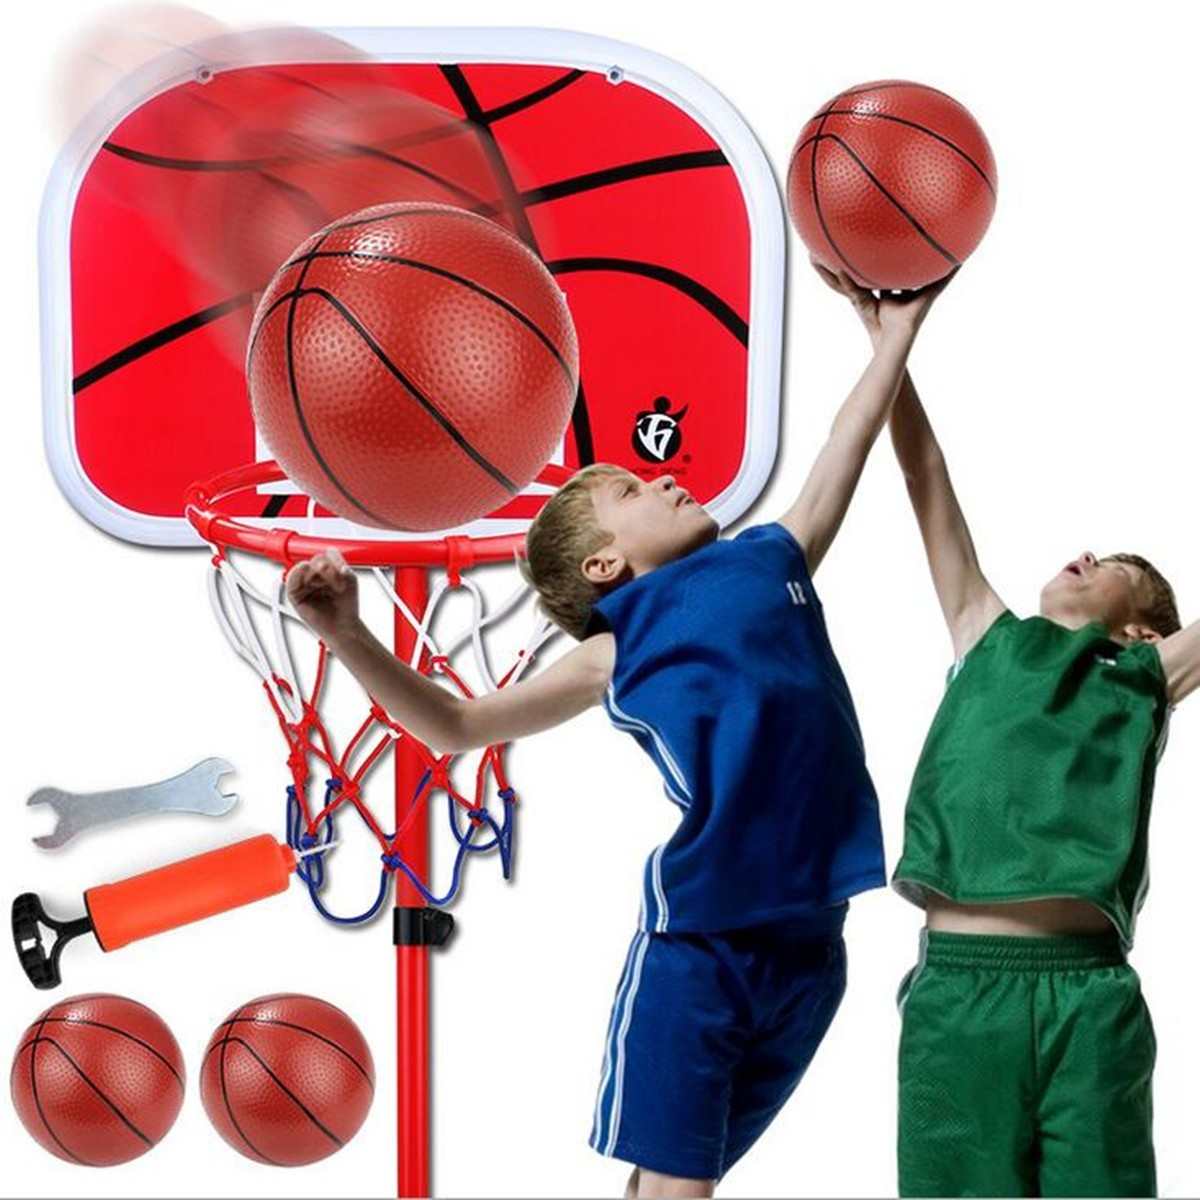 Basketball Hoop+Basketball+Pump 1.5m Height Adjustable Kids Mimi Basketball Hoop Rim Net Set Backboard Basket Ball 72-150cm